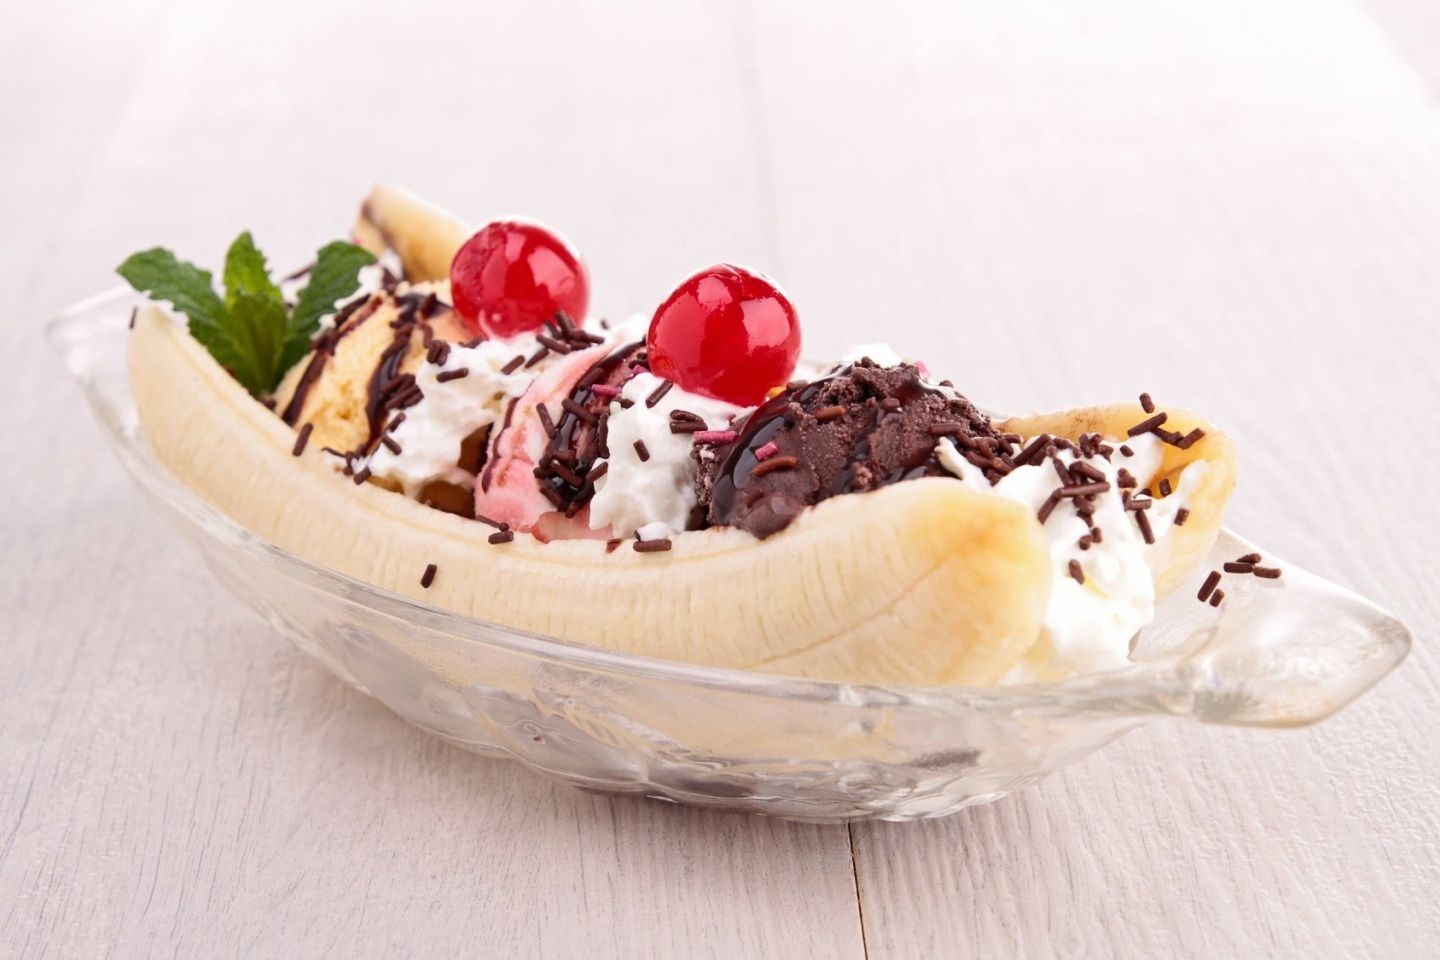 Banana Split New Wallpaper Wallpaper Photo Shared By Gian27 Fans 1440x960